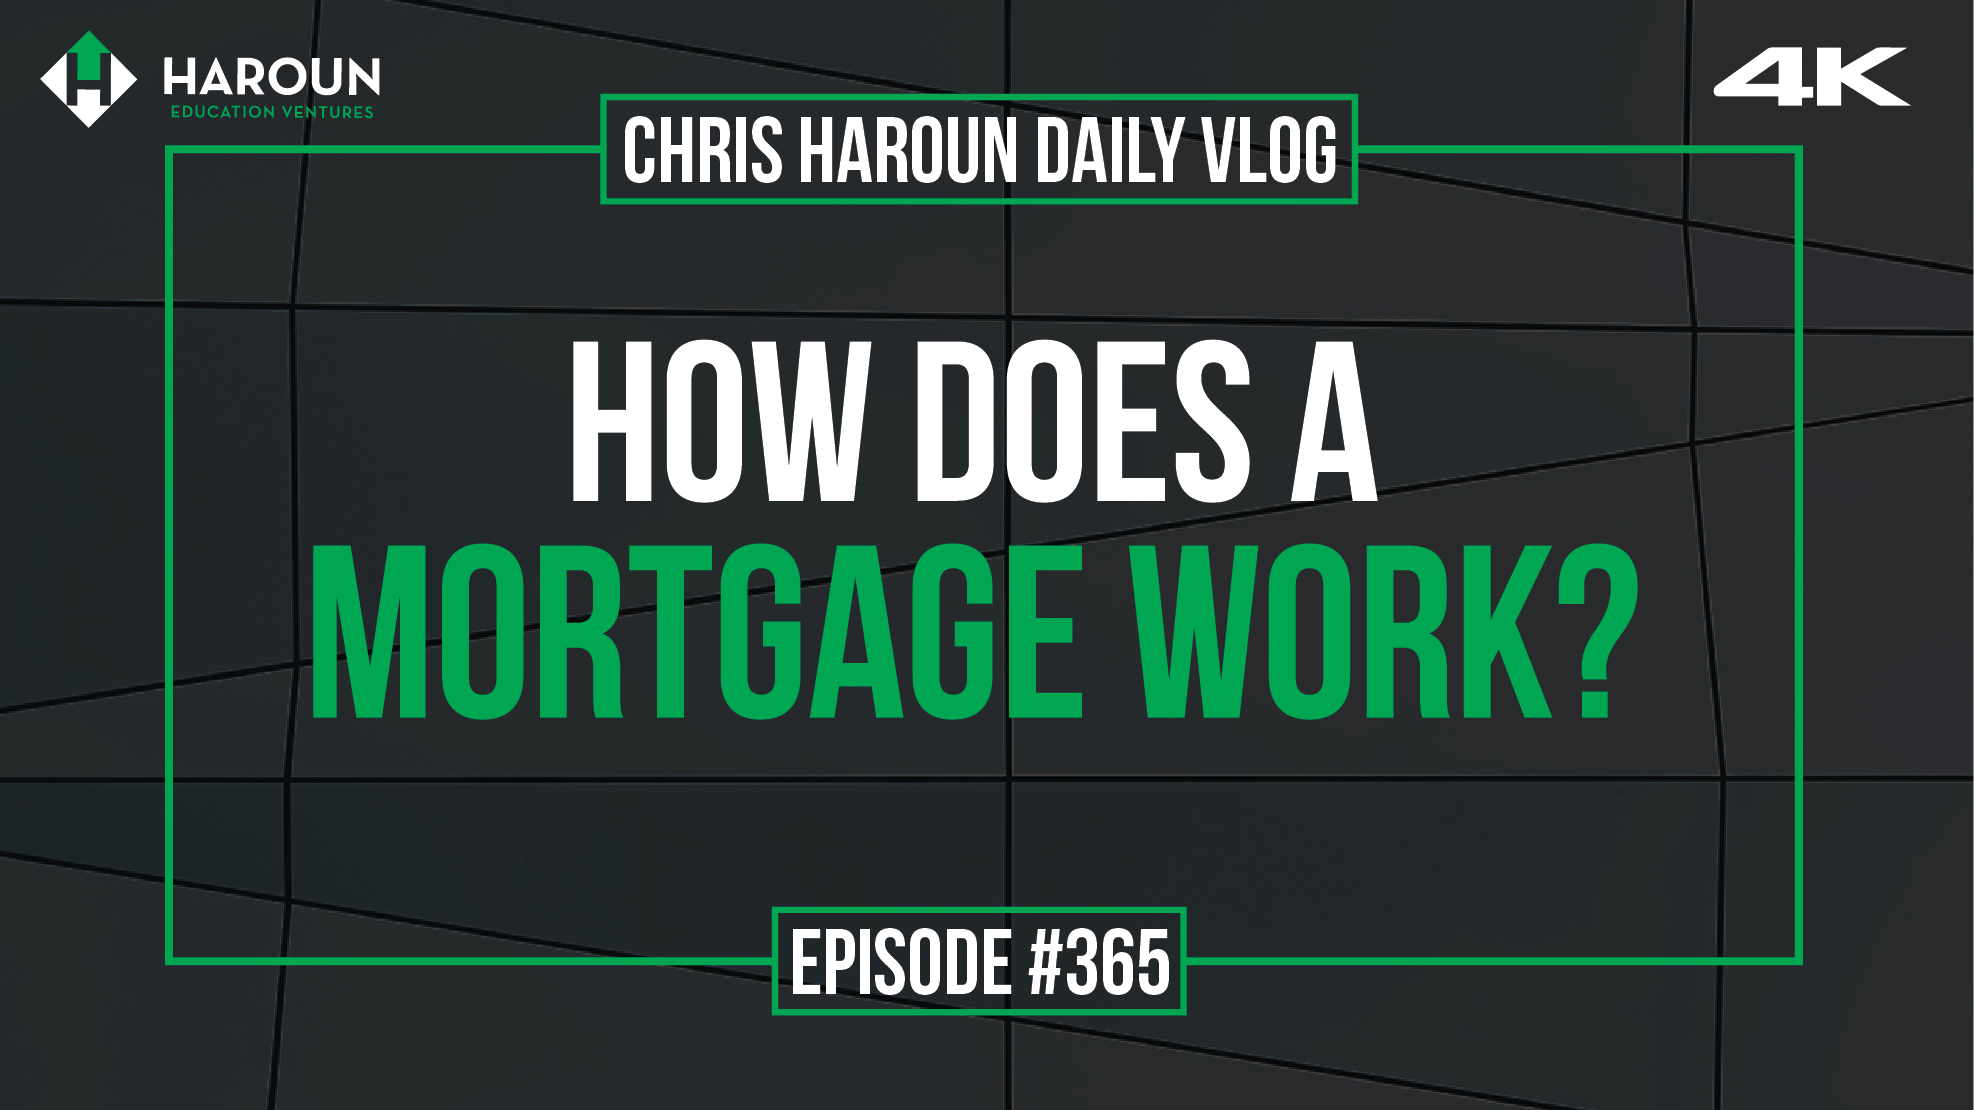 VLOG_365_7_31_2019_How Does a Mortgage Work?.png